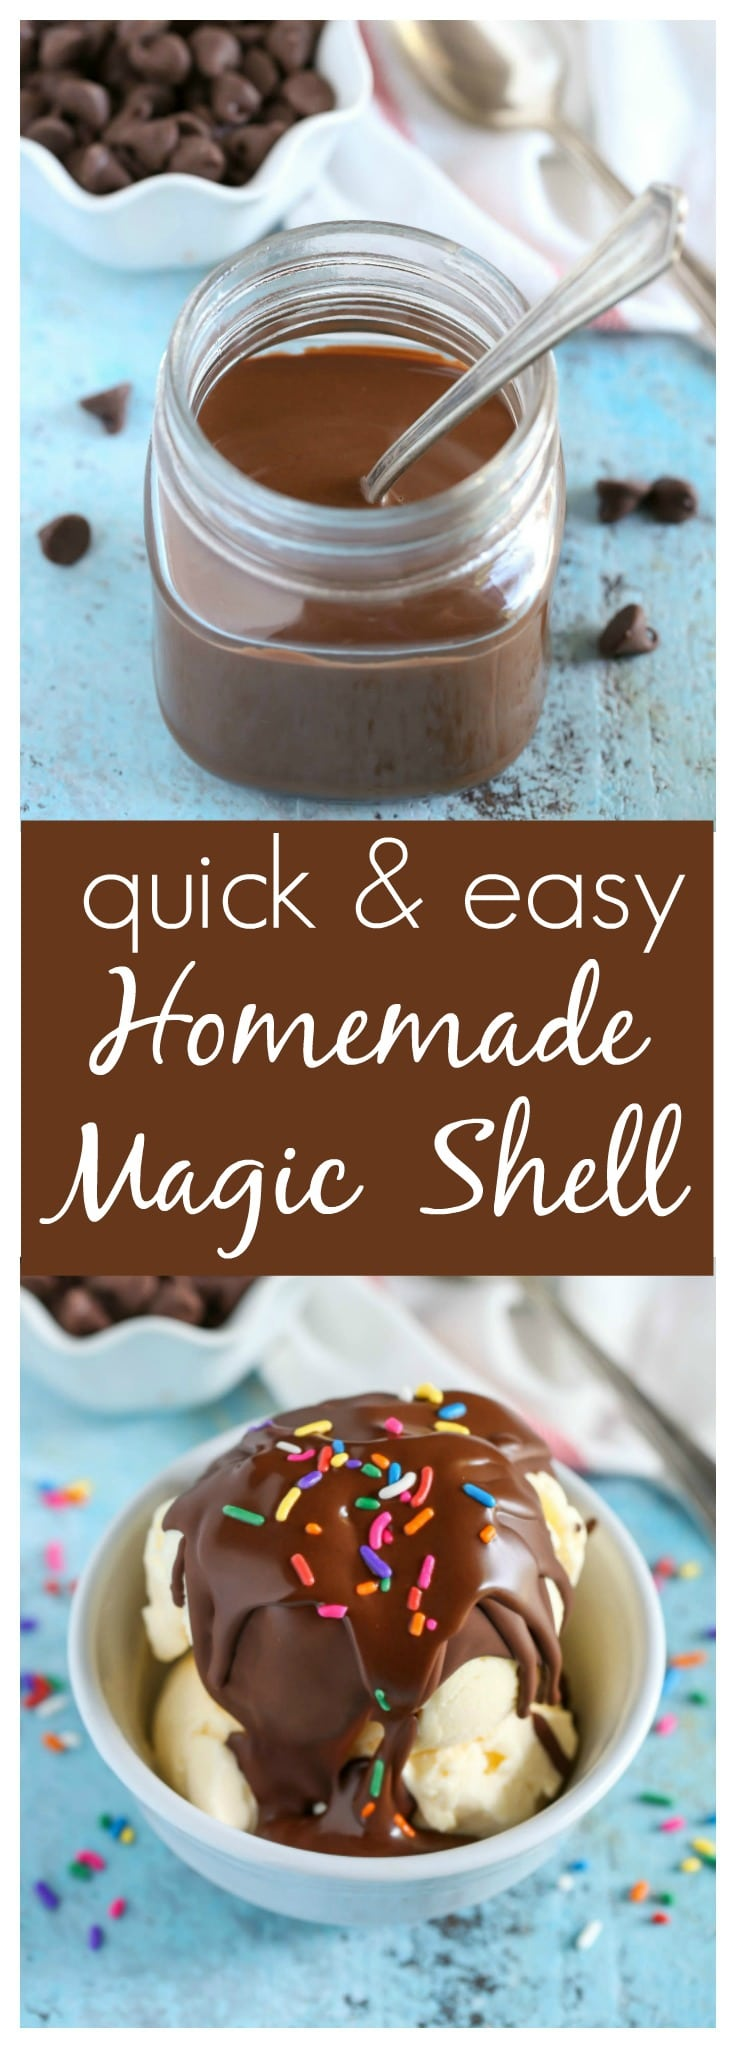 An easy recipe for Homemade Magic Shell with just two ingredients. The perfect topping for almost any ice cream!